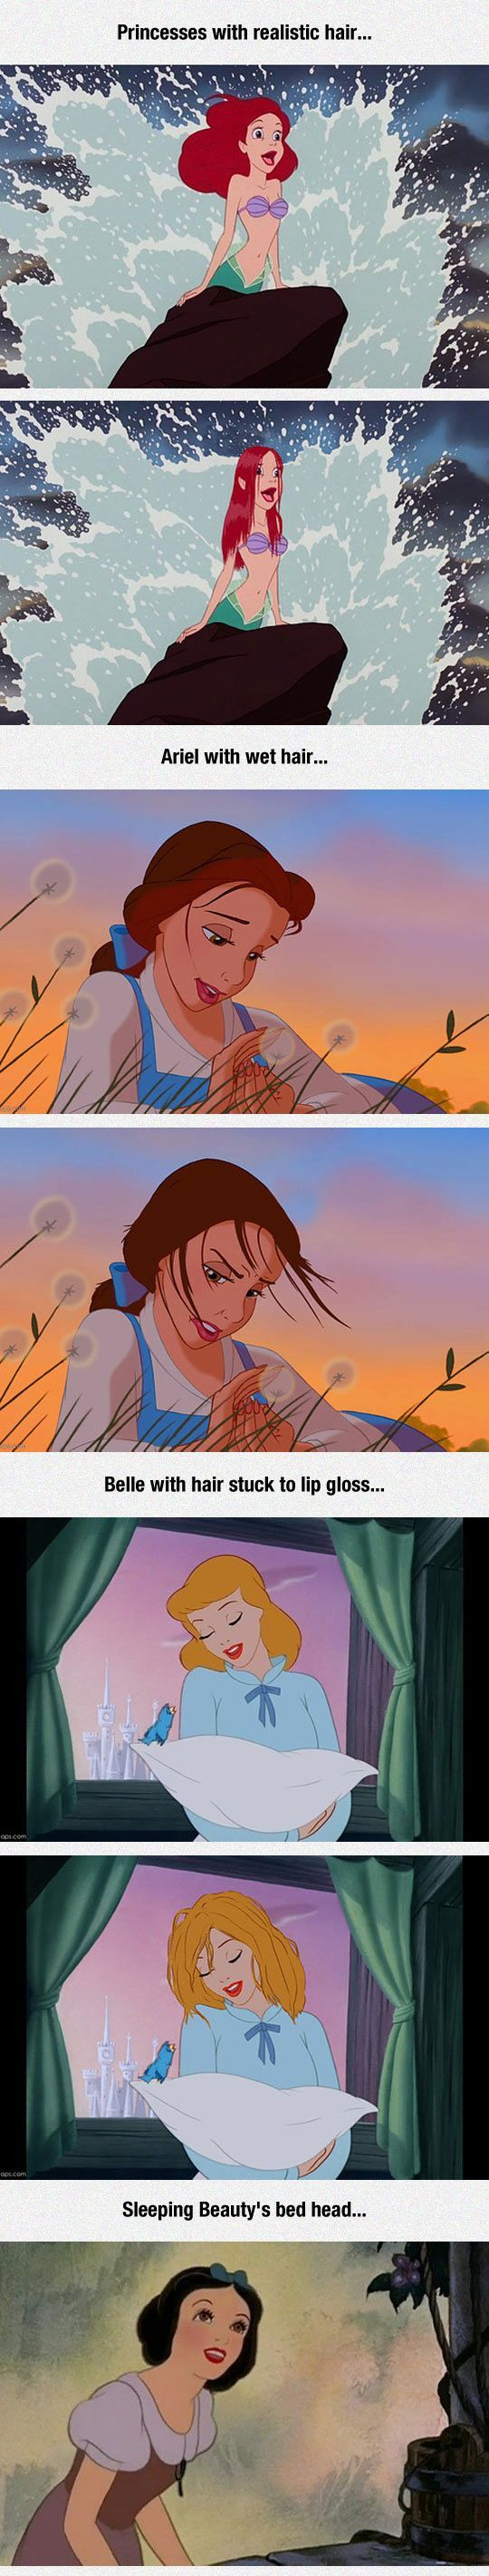 Disney Princesses With Realistic Hair~~ Other than the fact that it's Cinderella not Sleeping Beauty, too funny